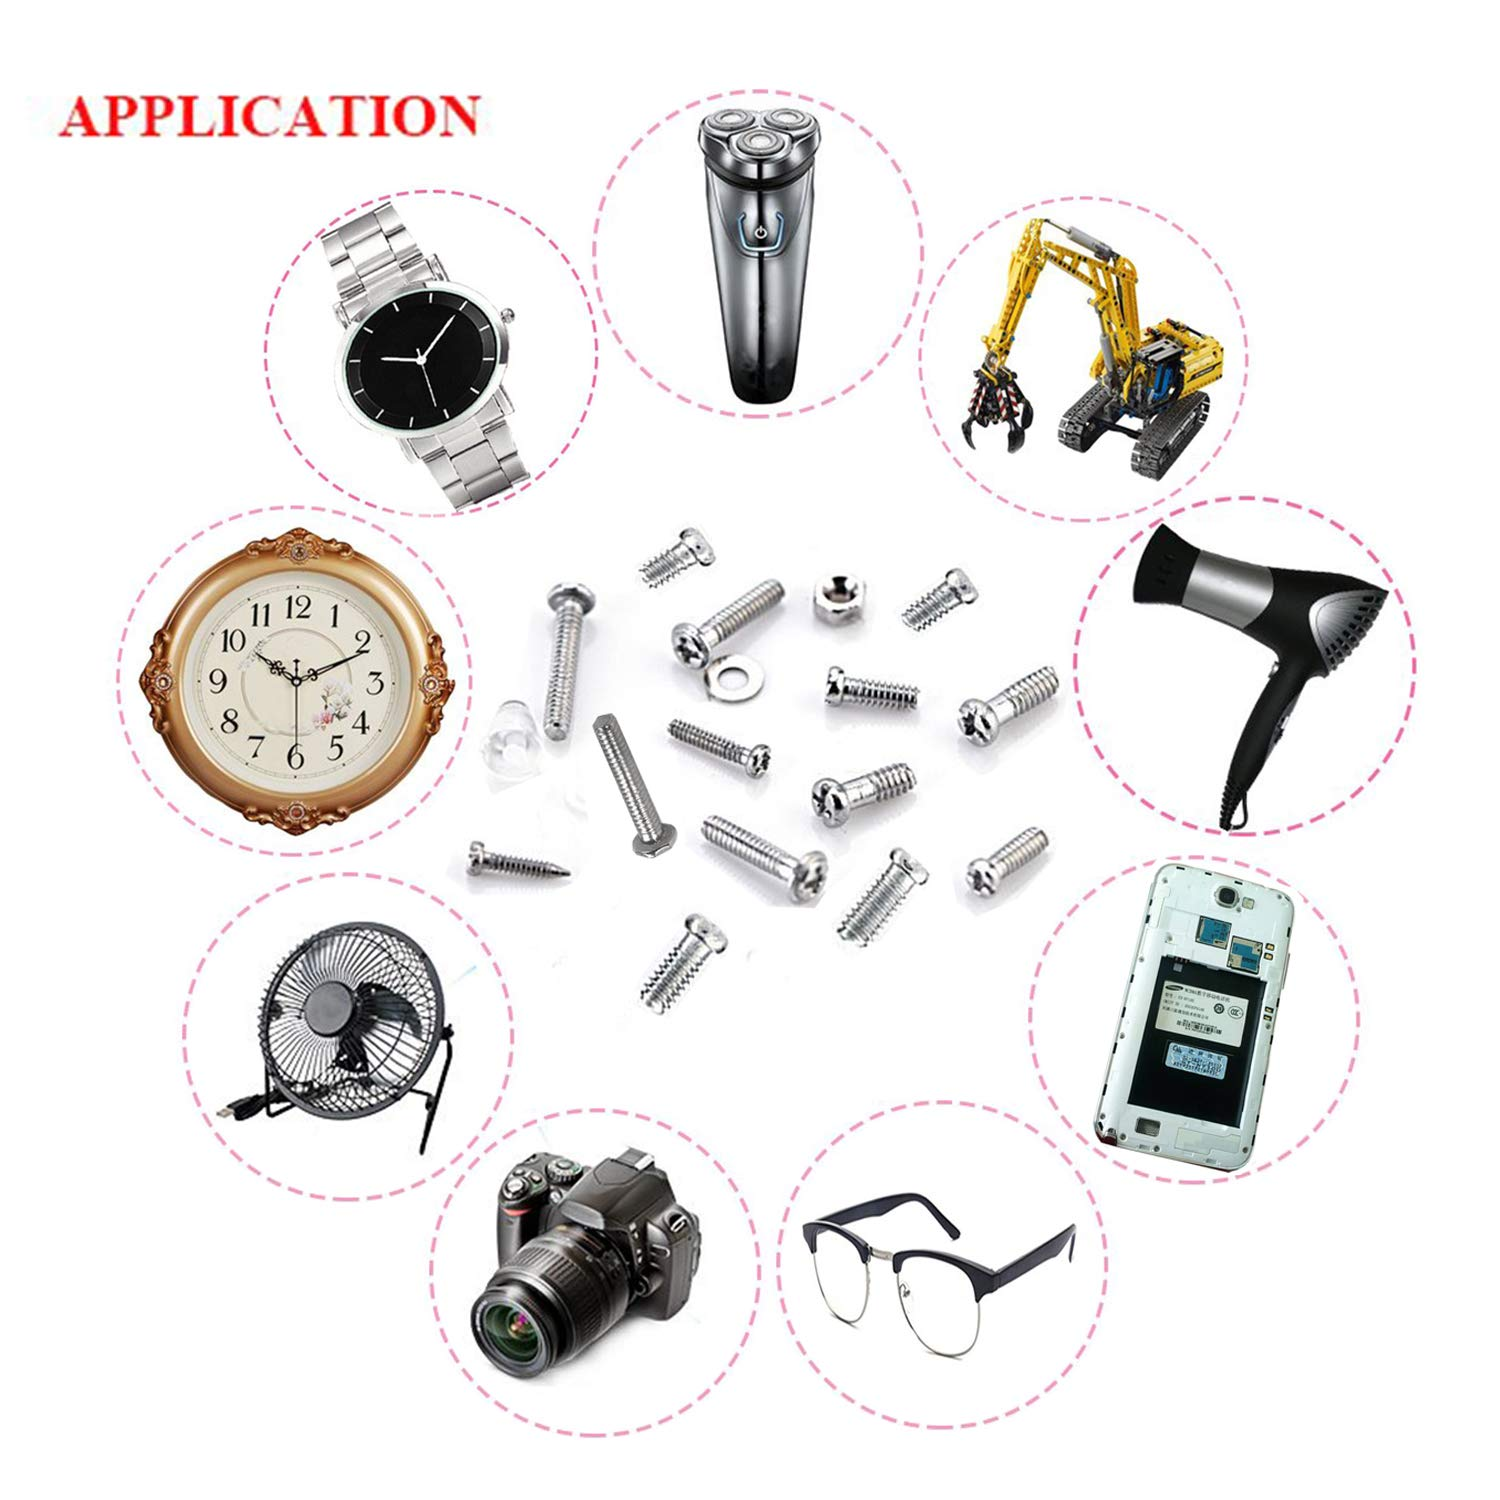 Eyeglass Repair Tool Kit Hotetey 1000PCS Tiny Repair Screws & Nut Assortment Tool Kit with Tweezers and Mini 4 in 1 Screwdriver Keychain for Spectacles Glasses Cellphone Watches